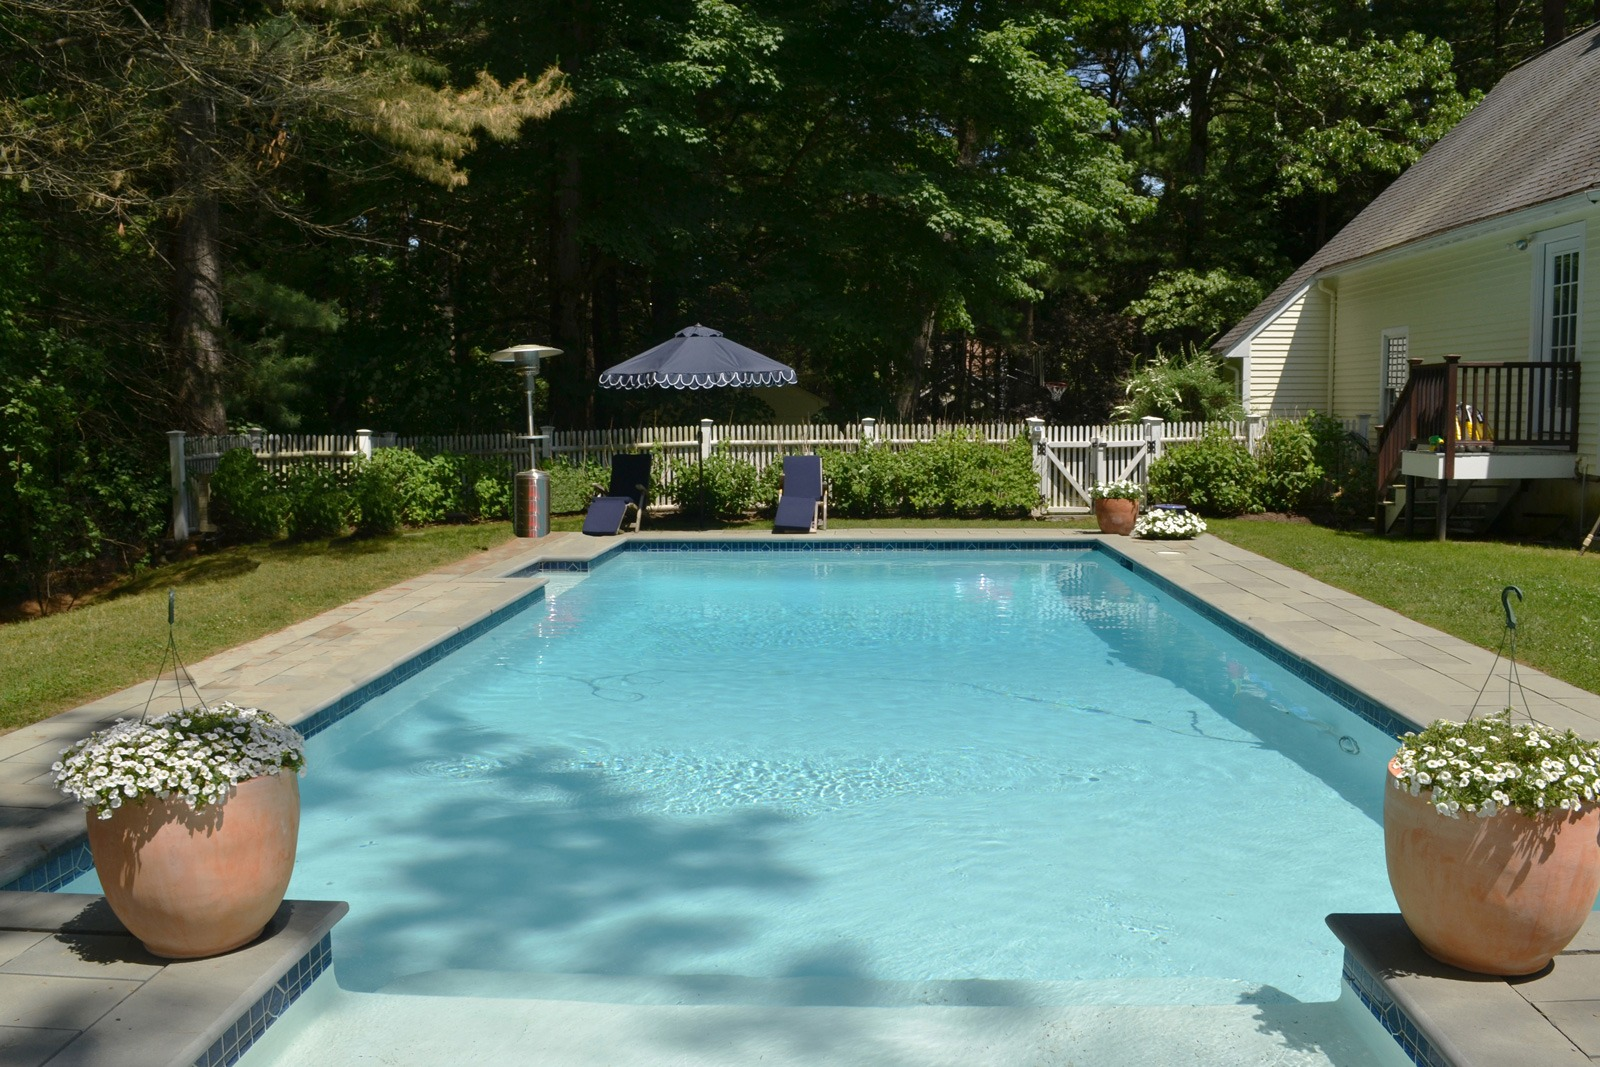 pool at 2 buttercup lane, dover MA